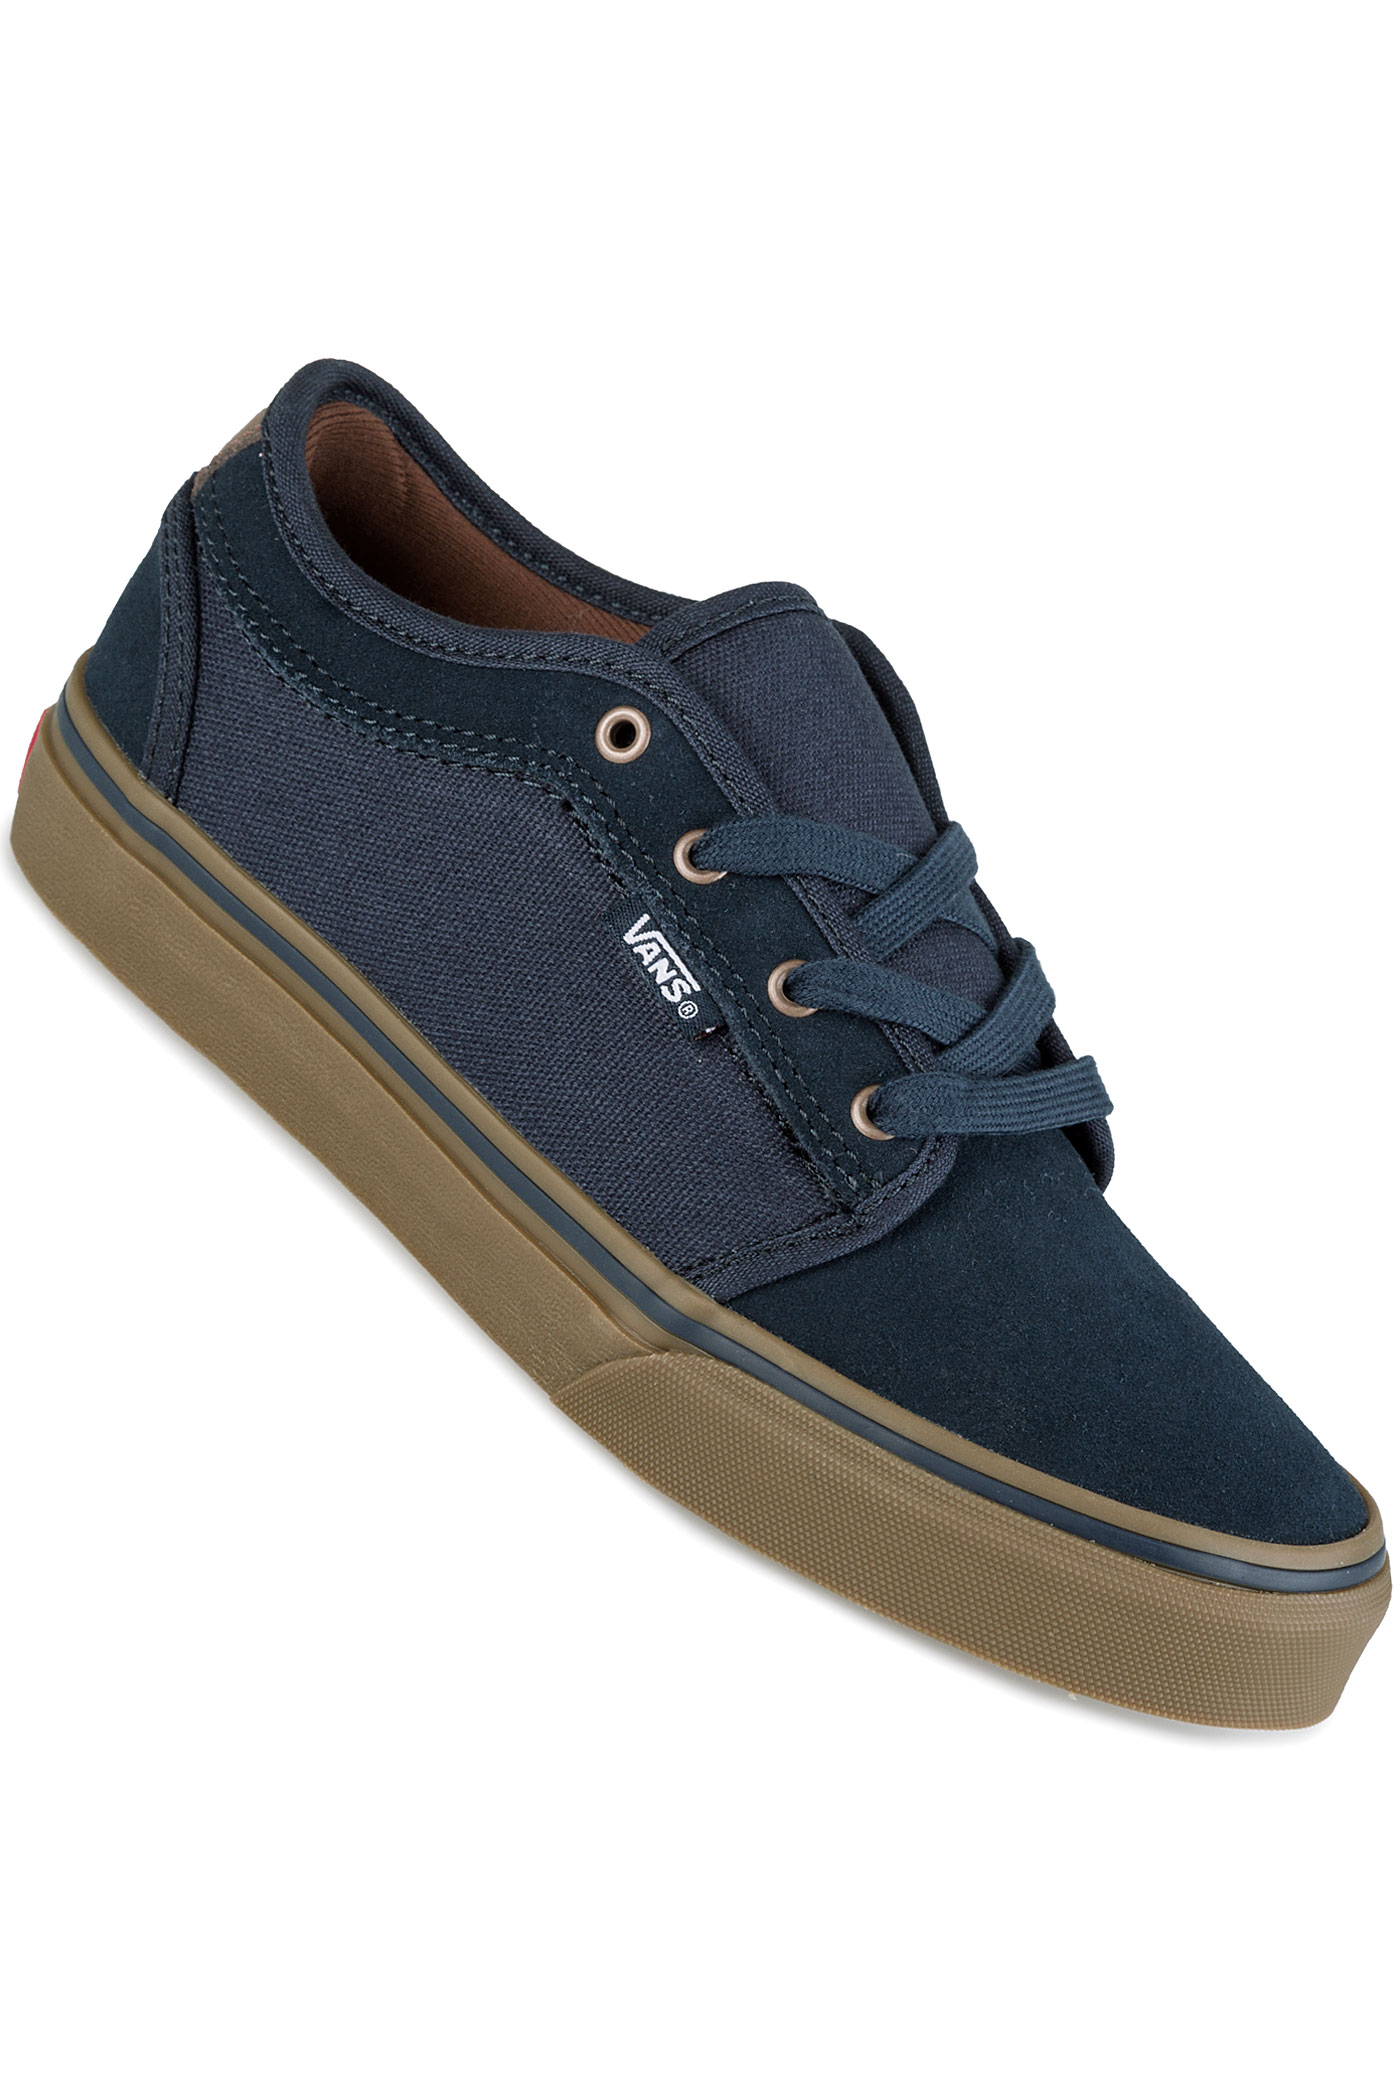 b3c83f6443 vans authentic navy gum   Come and stroll!